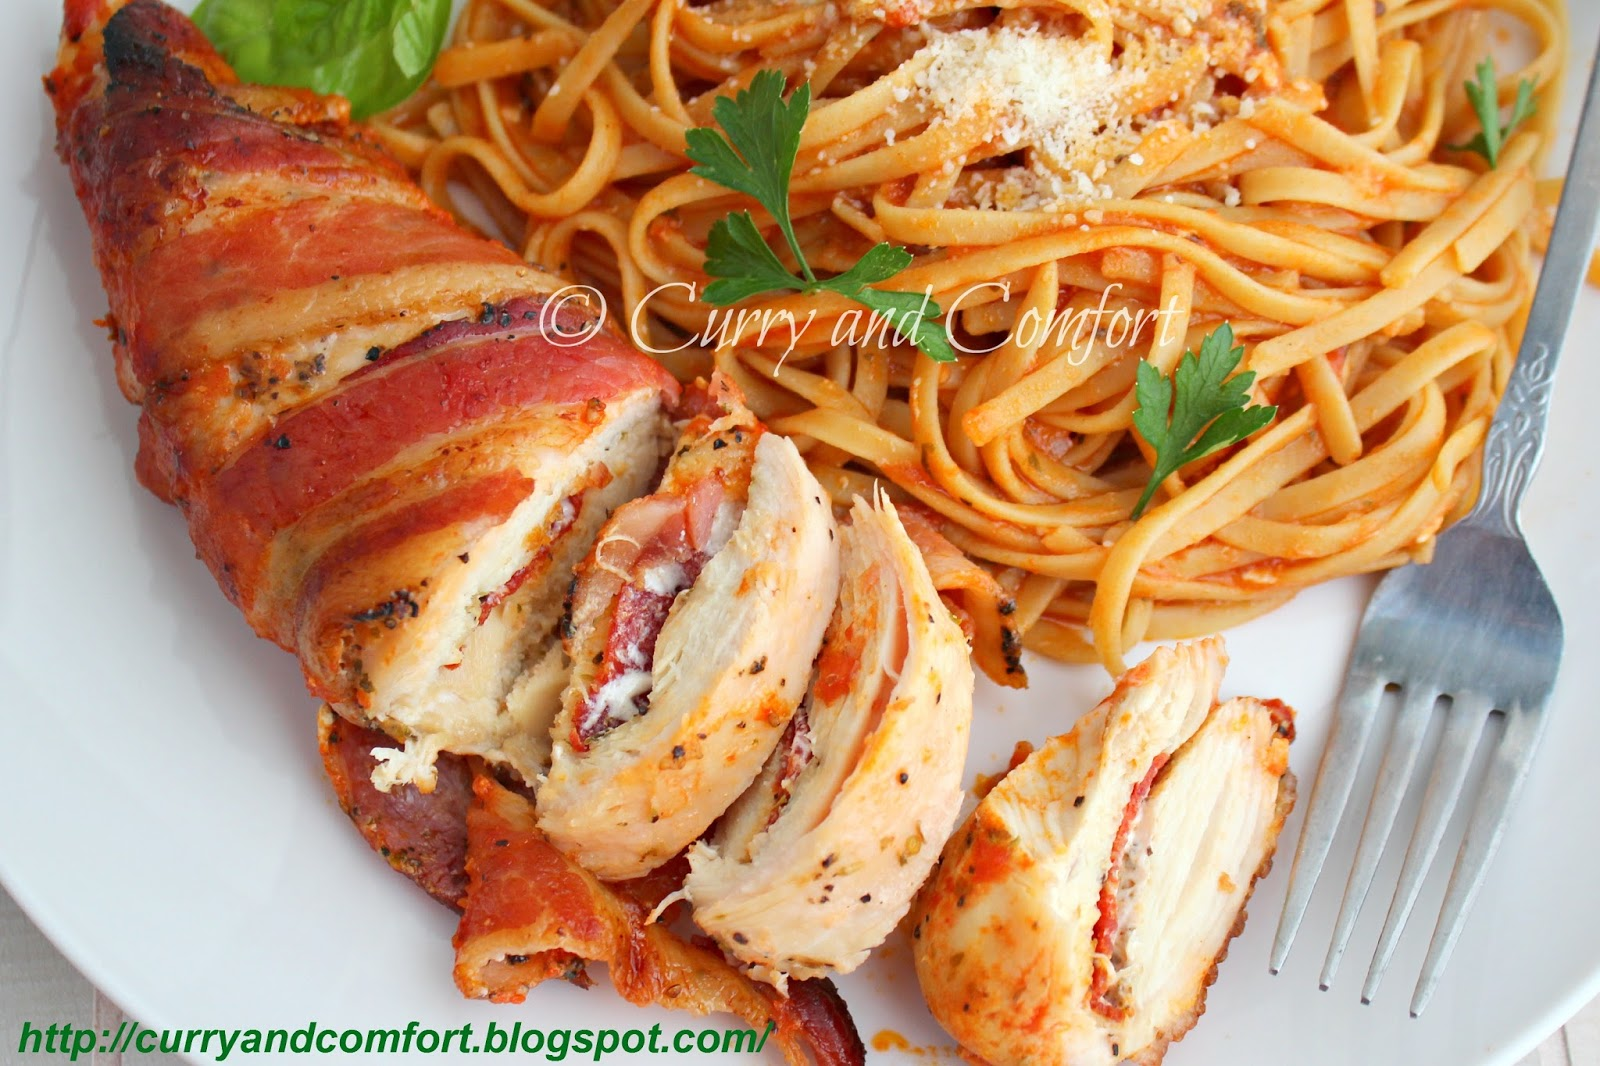 Kitchen simmer pizza stuffed bacon wrapped chicken with pasta day pizza stuffed bacon wrapped chicken with pasta day 3 of bacon week baconweek forumfinder Gallery